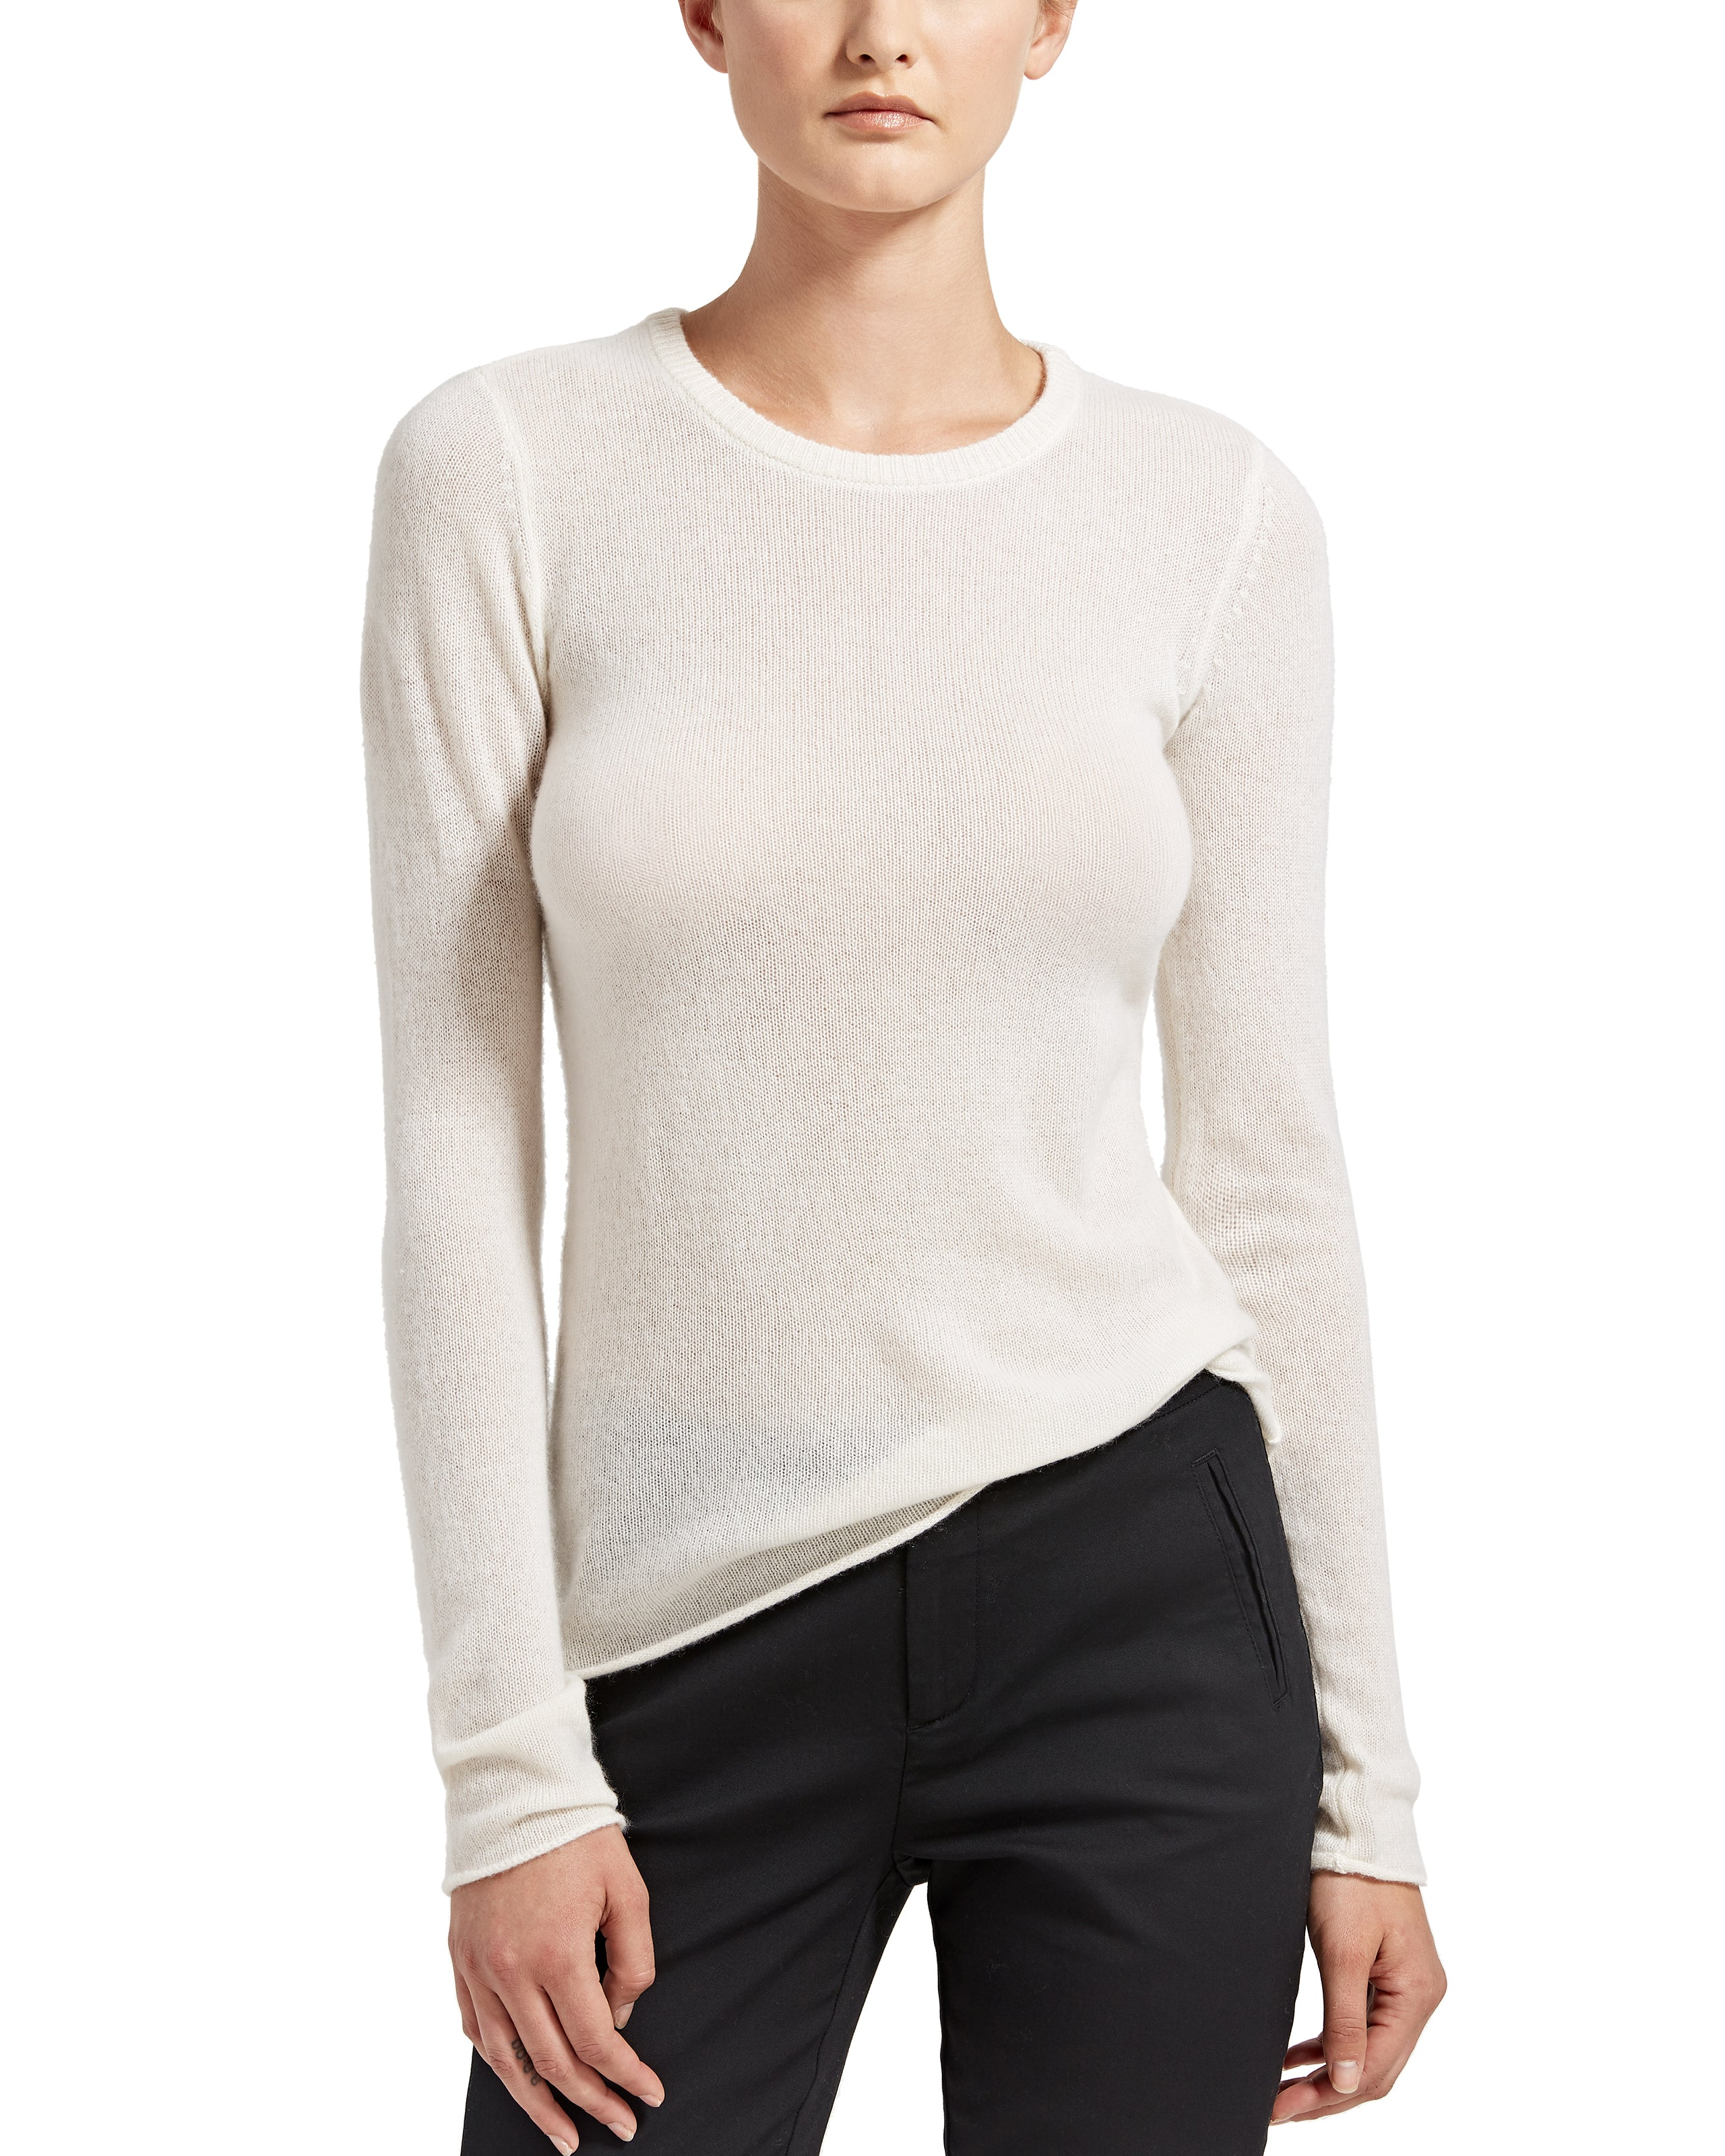 ATM Cashmere Crew Neck Sweater